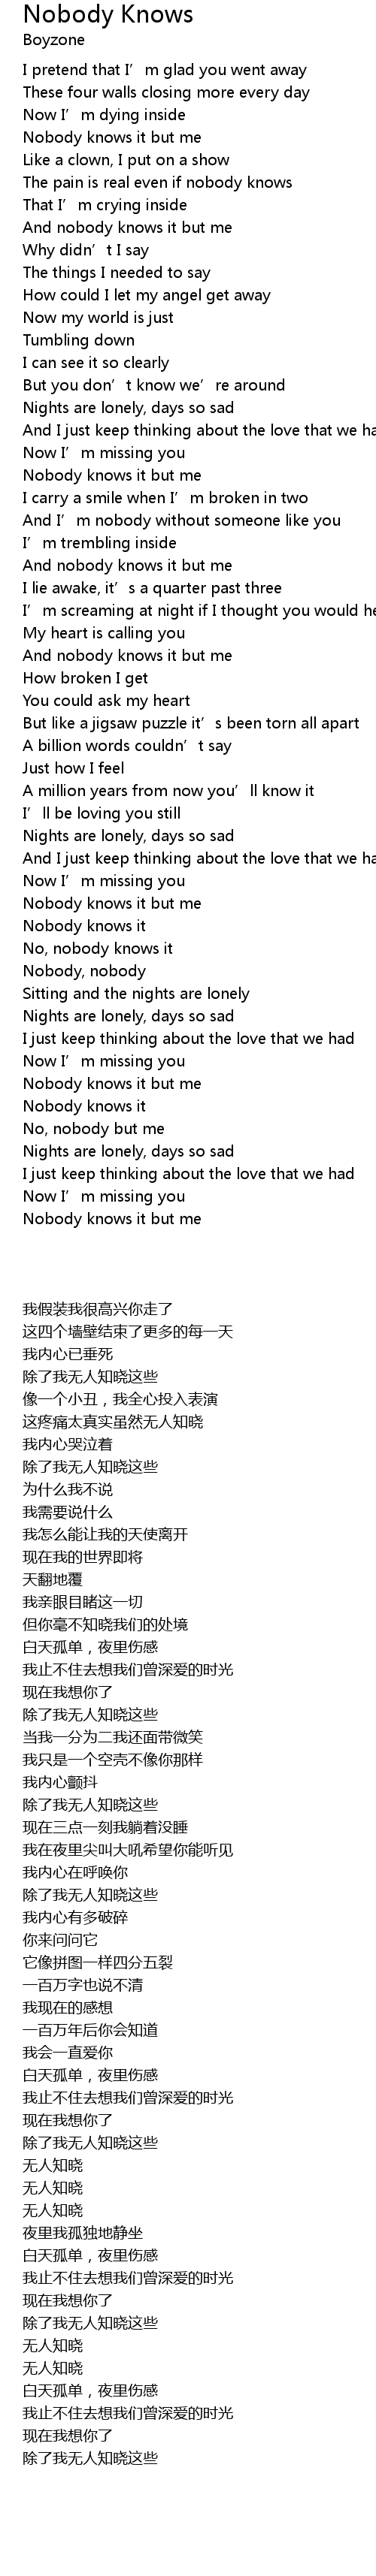 Nobody Knows Lyrics Follow Lyrics Nobody knows is a song by pink, and was the fourth single from her fourth album, i'm not dead (2006). follow lyrics